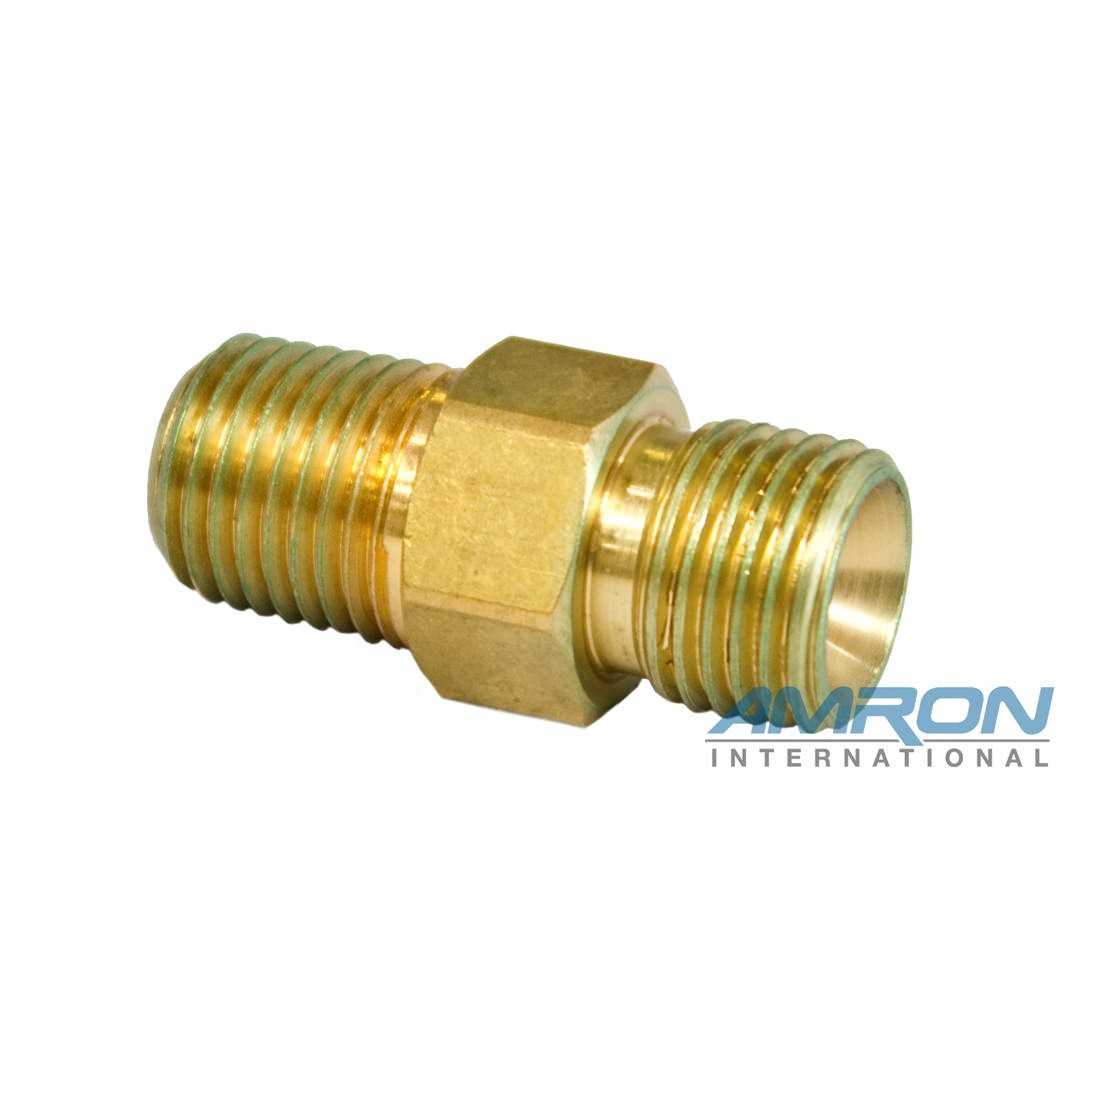 Kirby Morgan 555-117 1/4 in. Brass Adapter